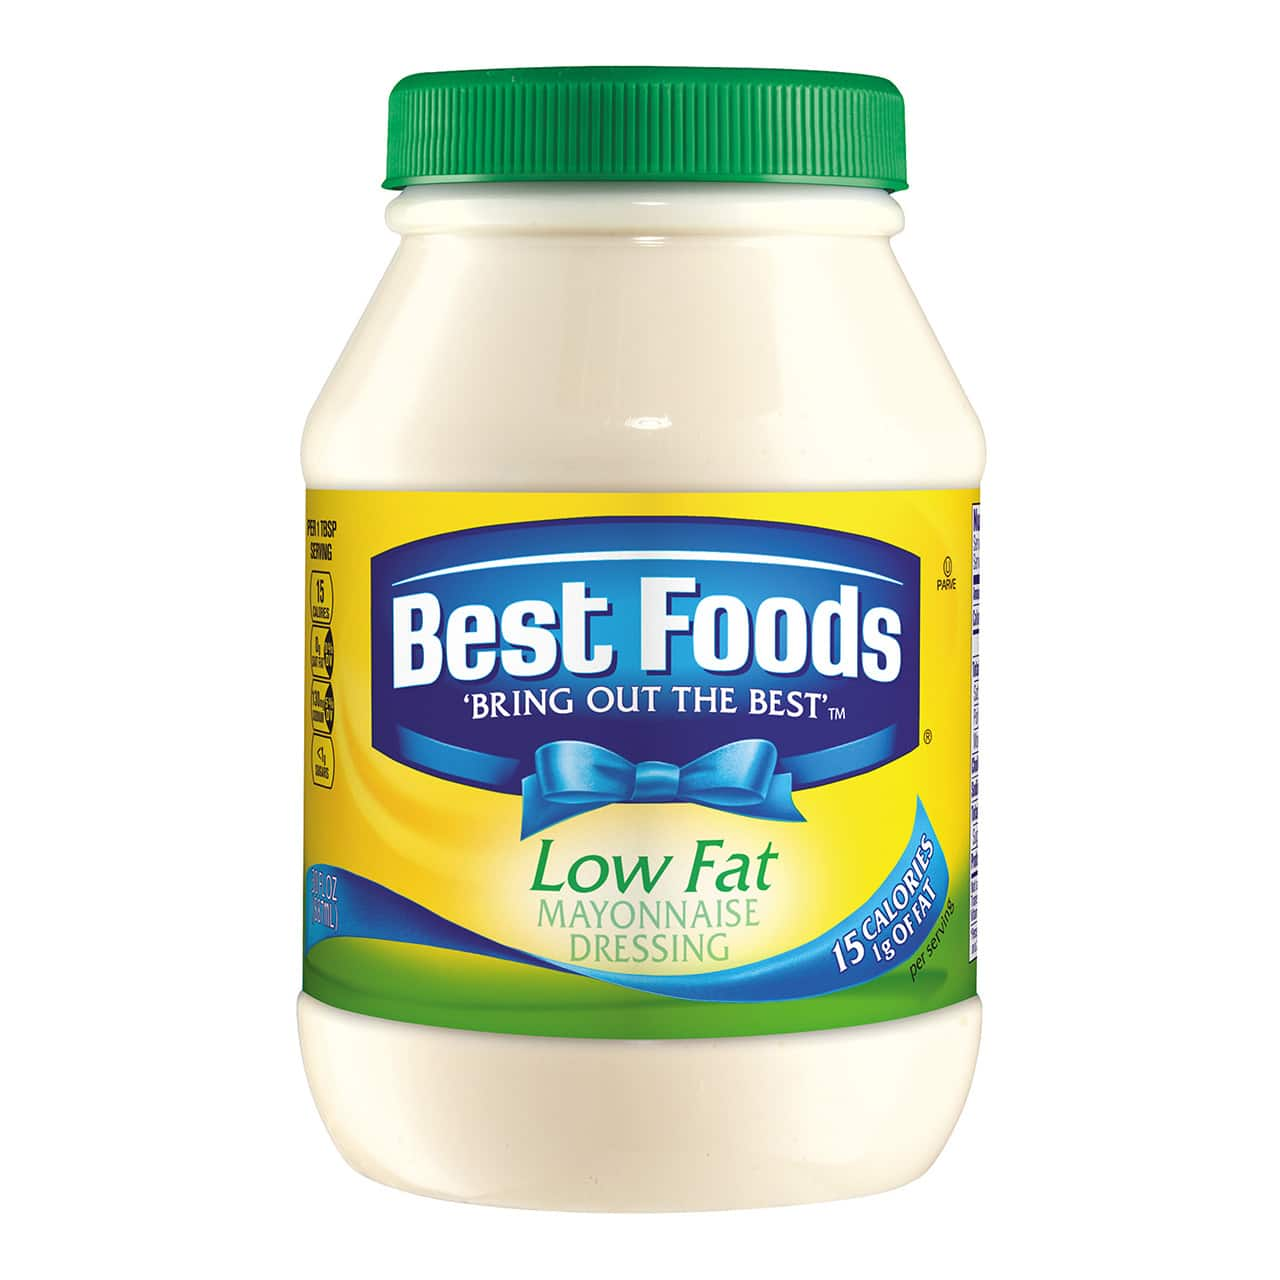 Low Fat Mayonnaise Dressing Best Foods